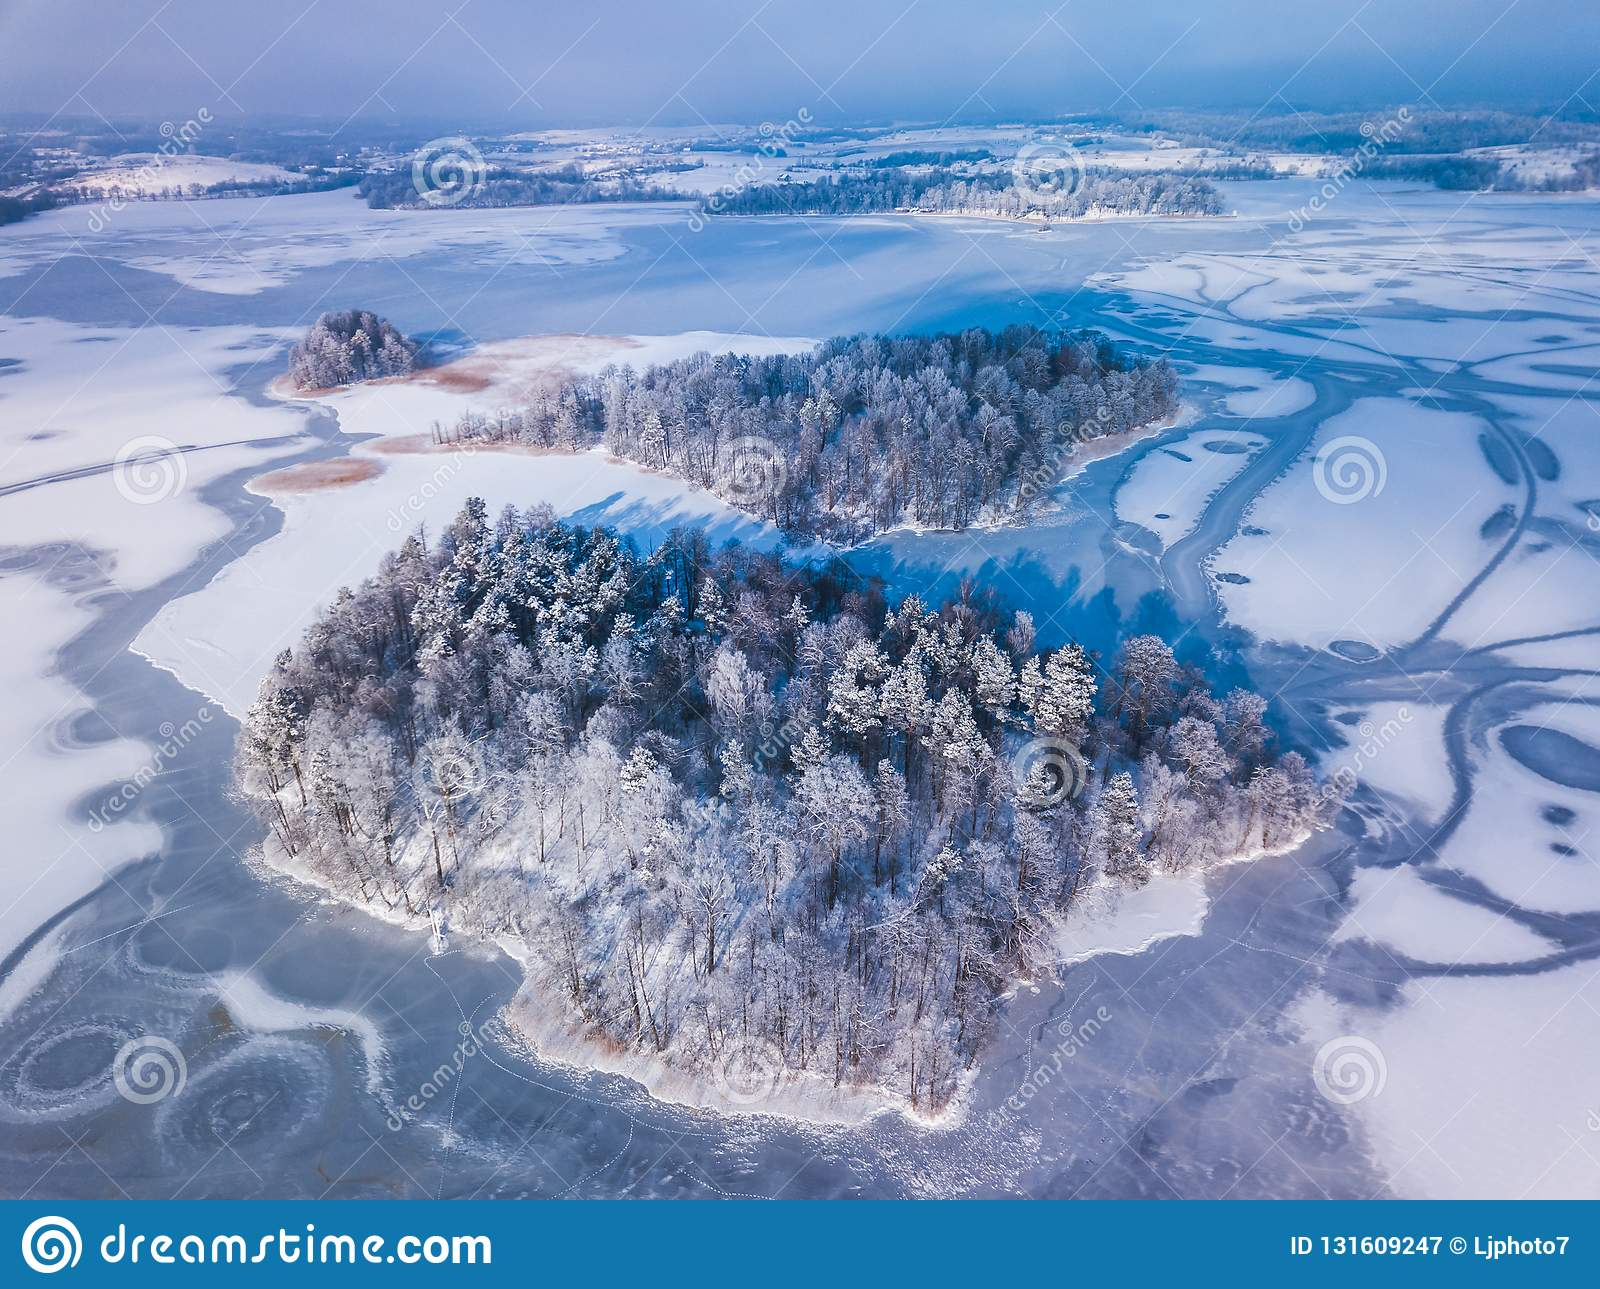 Aerial View Of The Winter Snow Covered Forest And Frozen